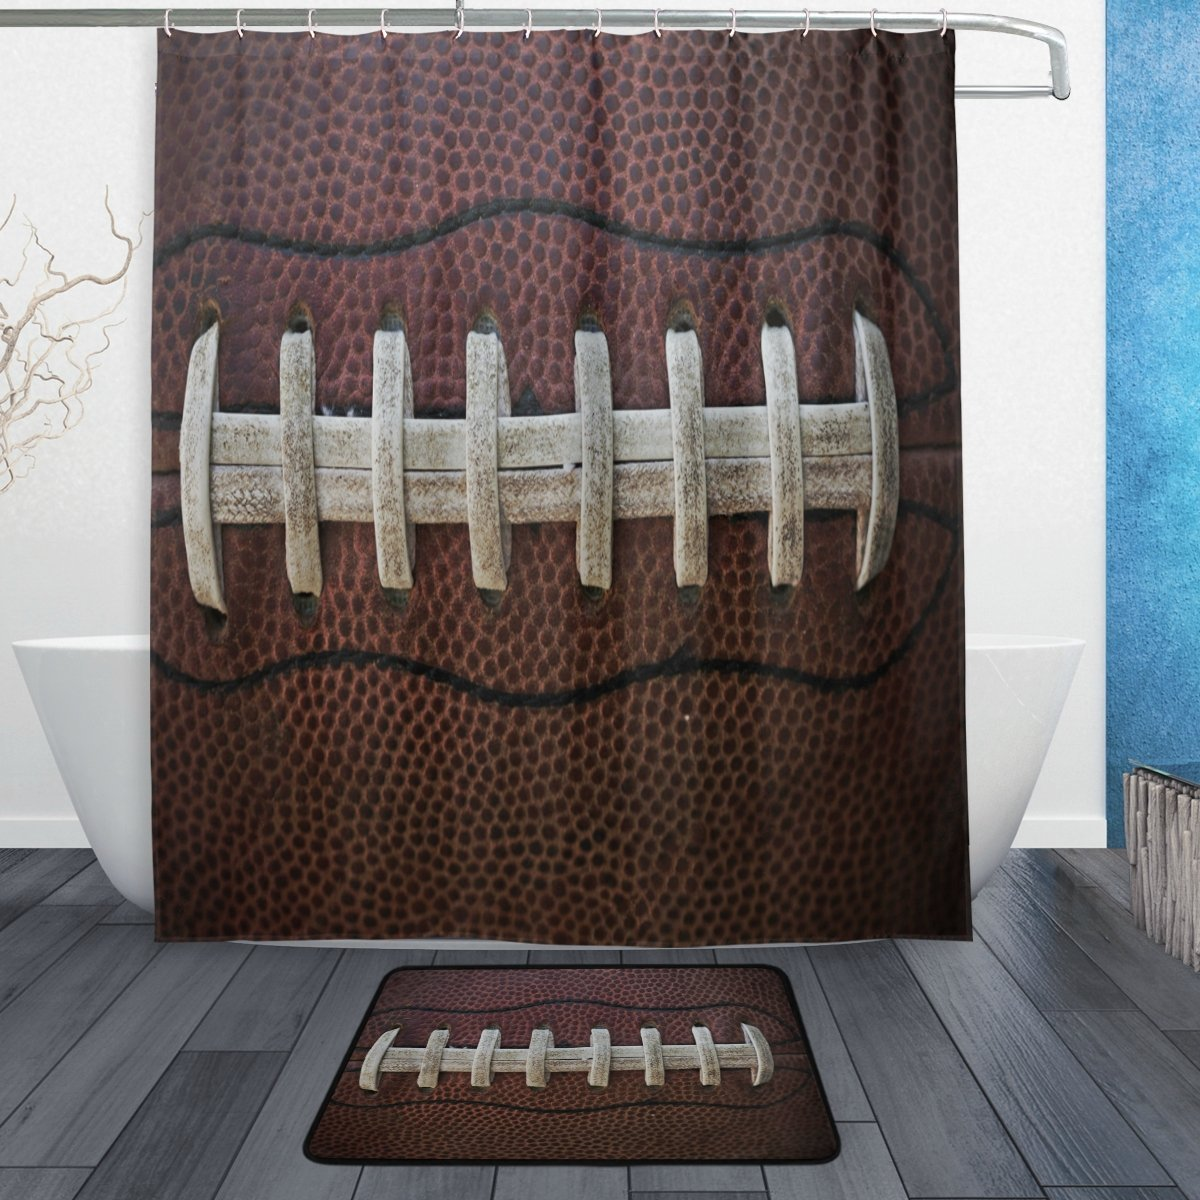 Buy sport shower curtains and get free shipping on for Best place to buy fabric for curtains